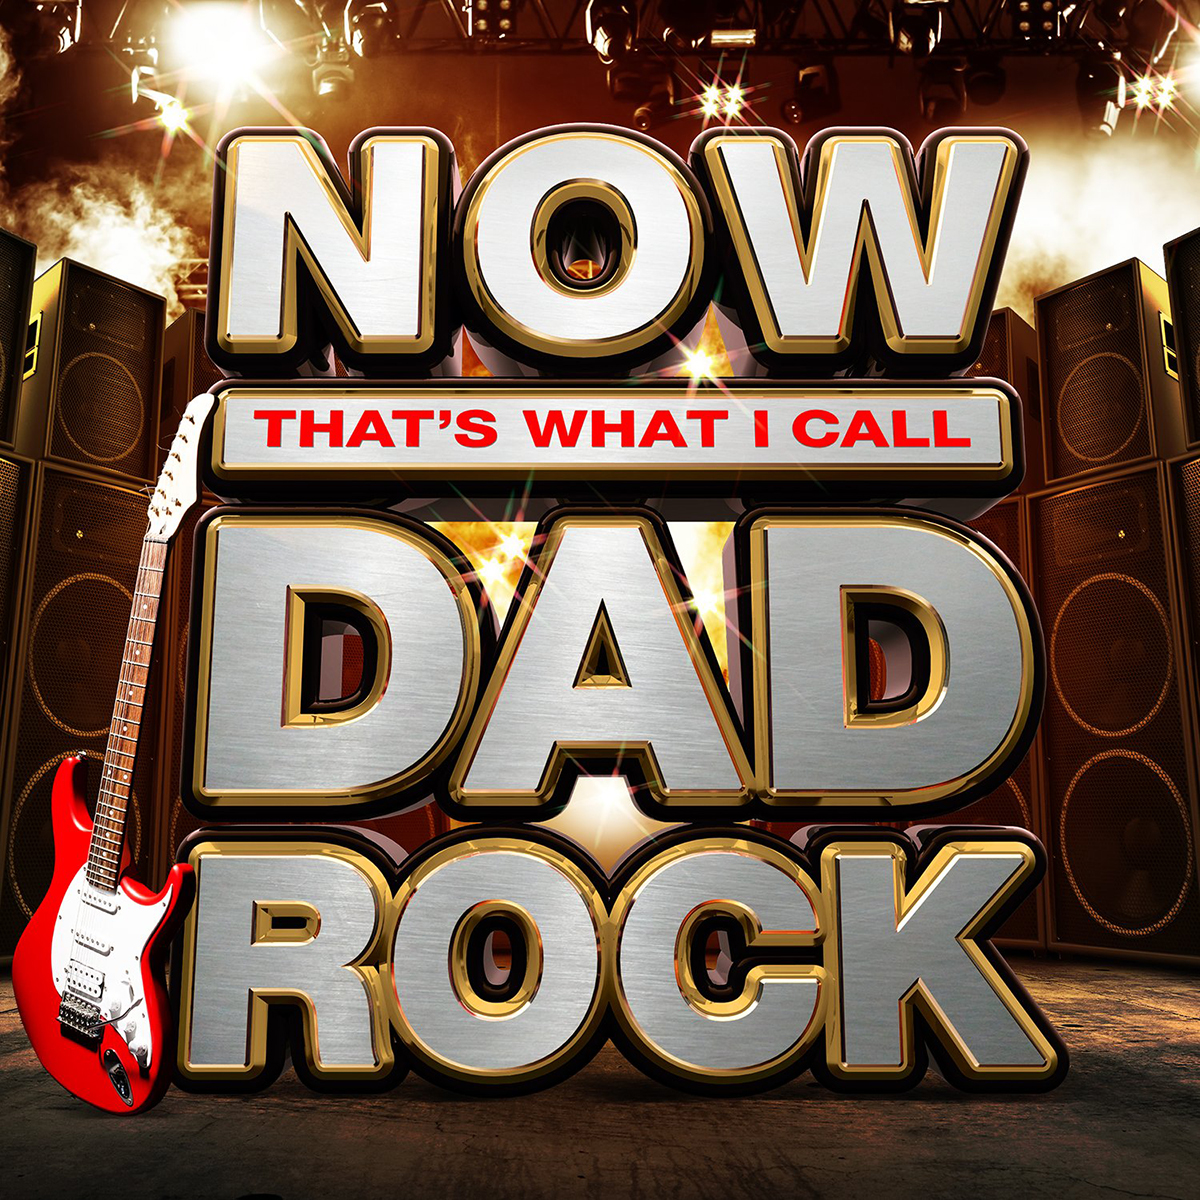 obrázek s kytarou a textem Now! That´s What I Call Dad Rock